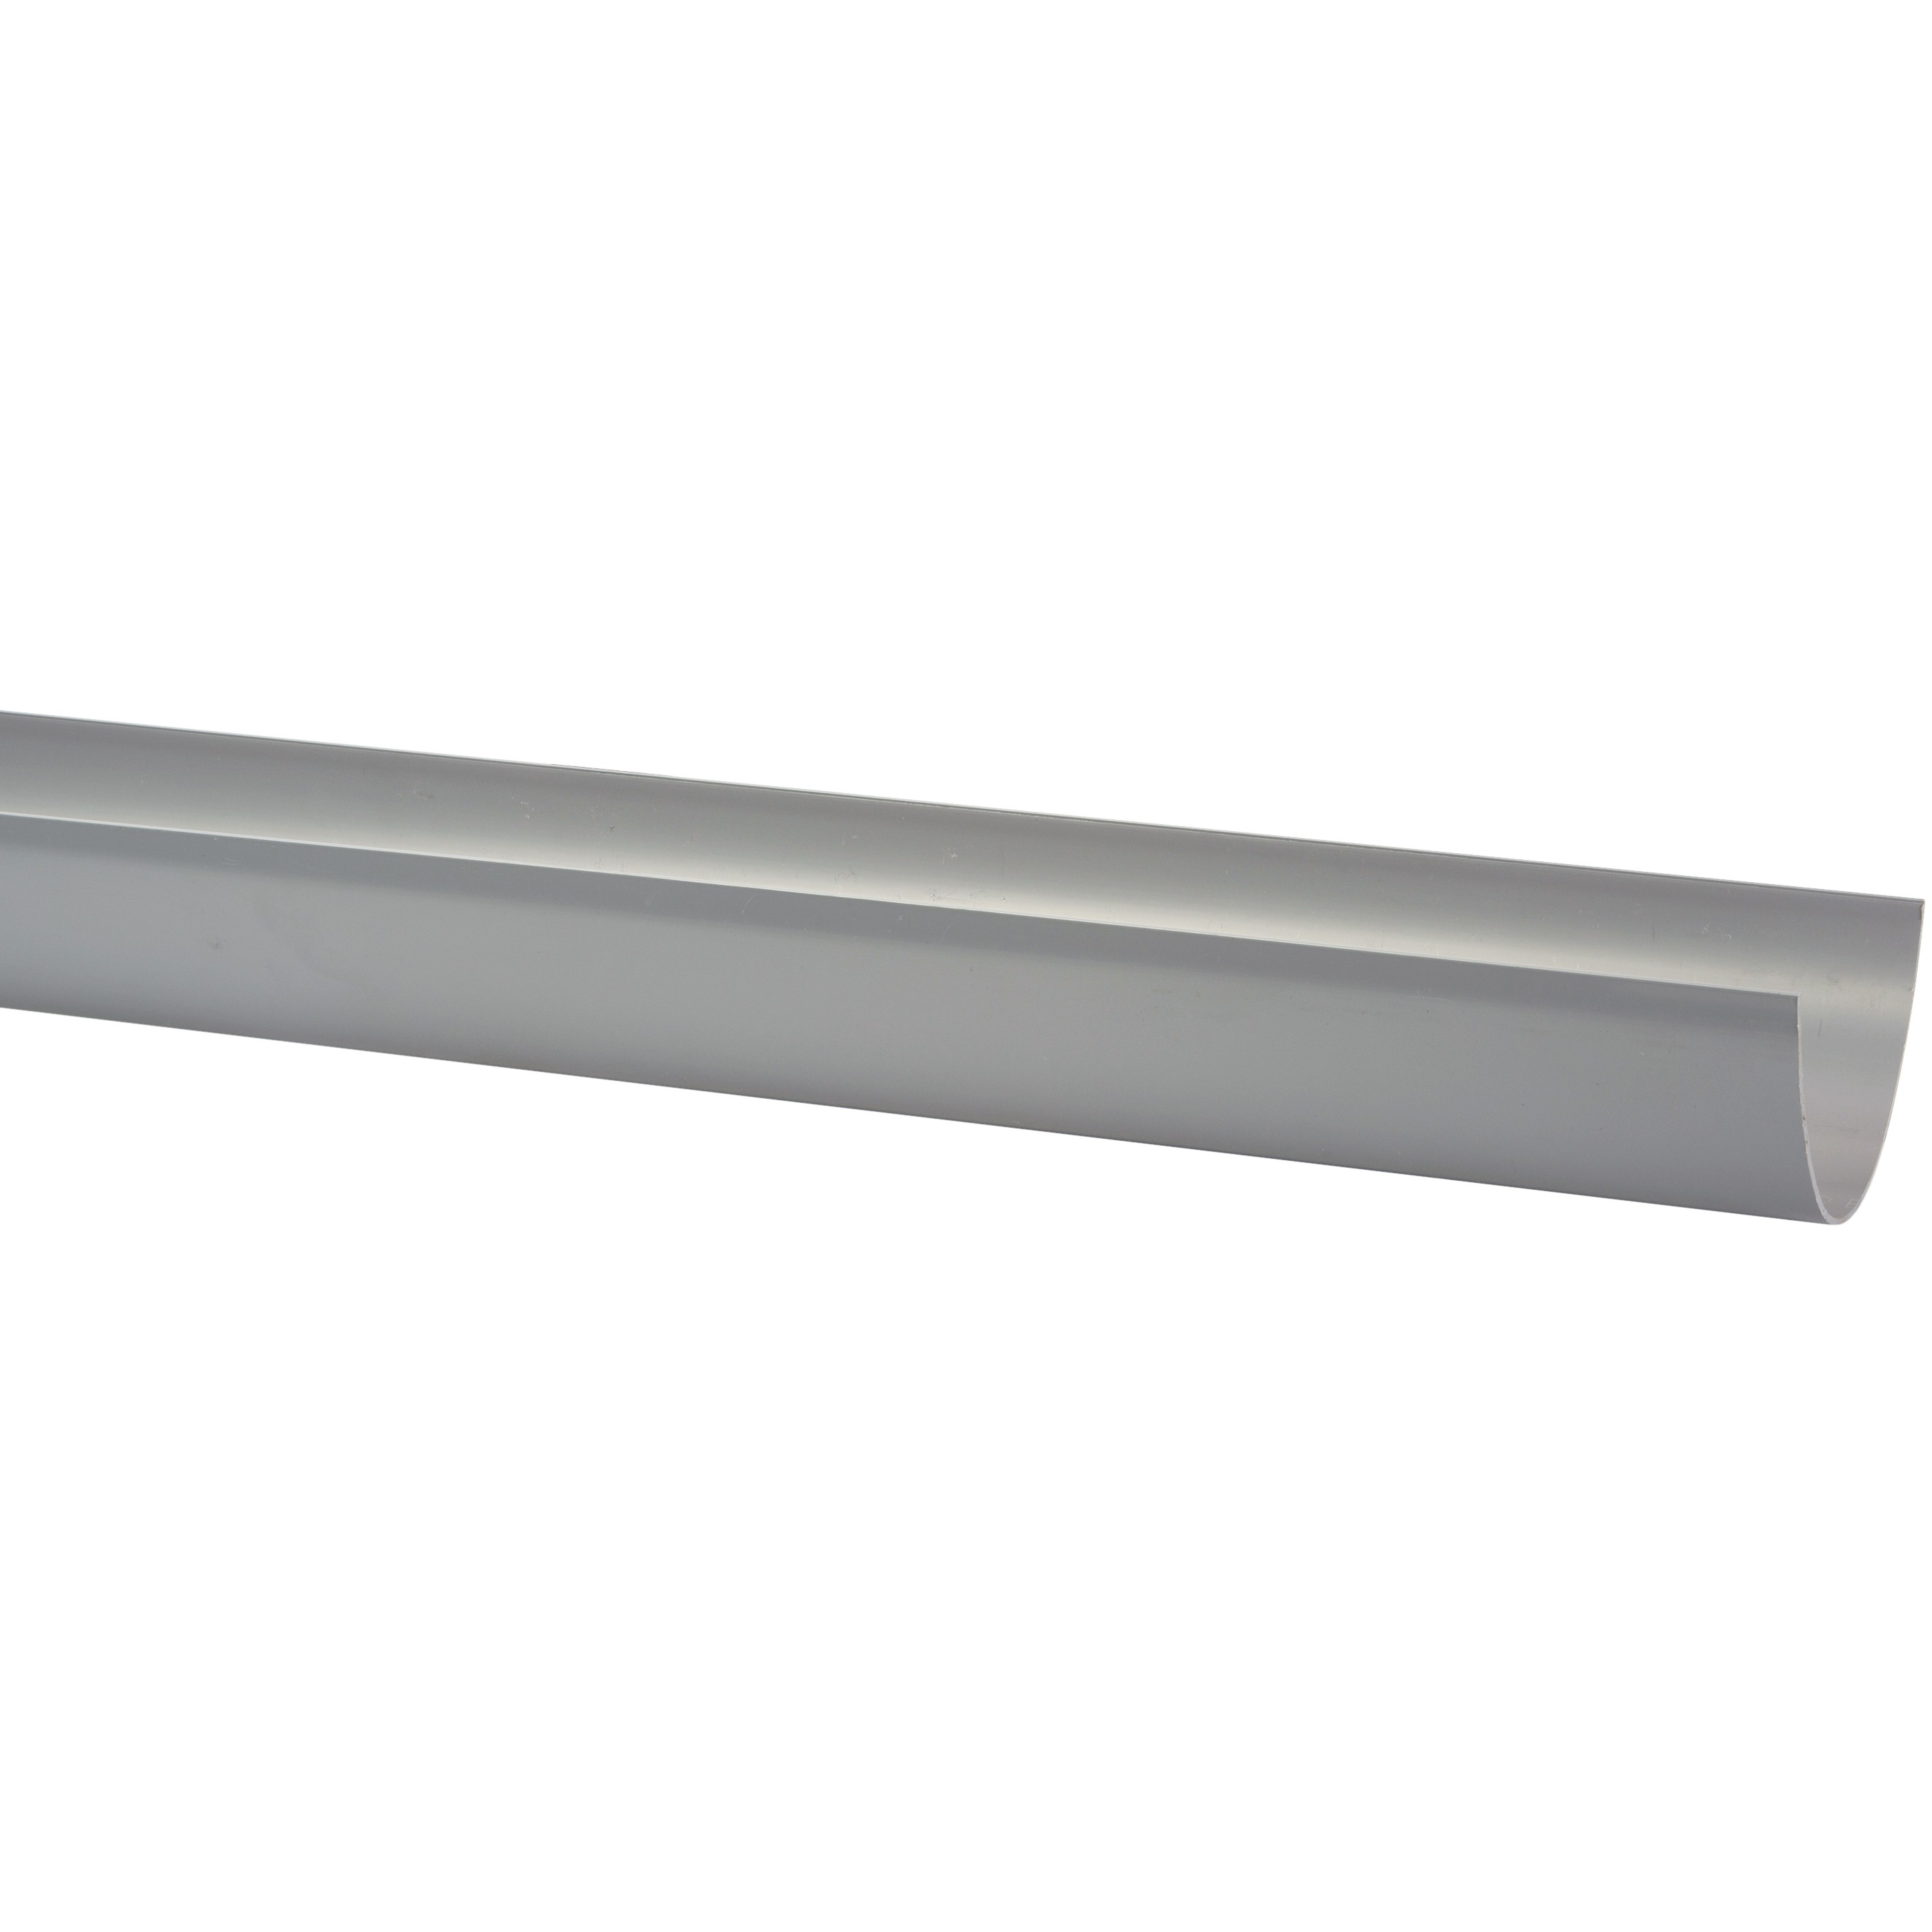 Polypipe 117mm Polyflow Deep Capacity Gutter - Grey, 2 metre